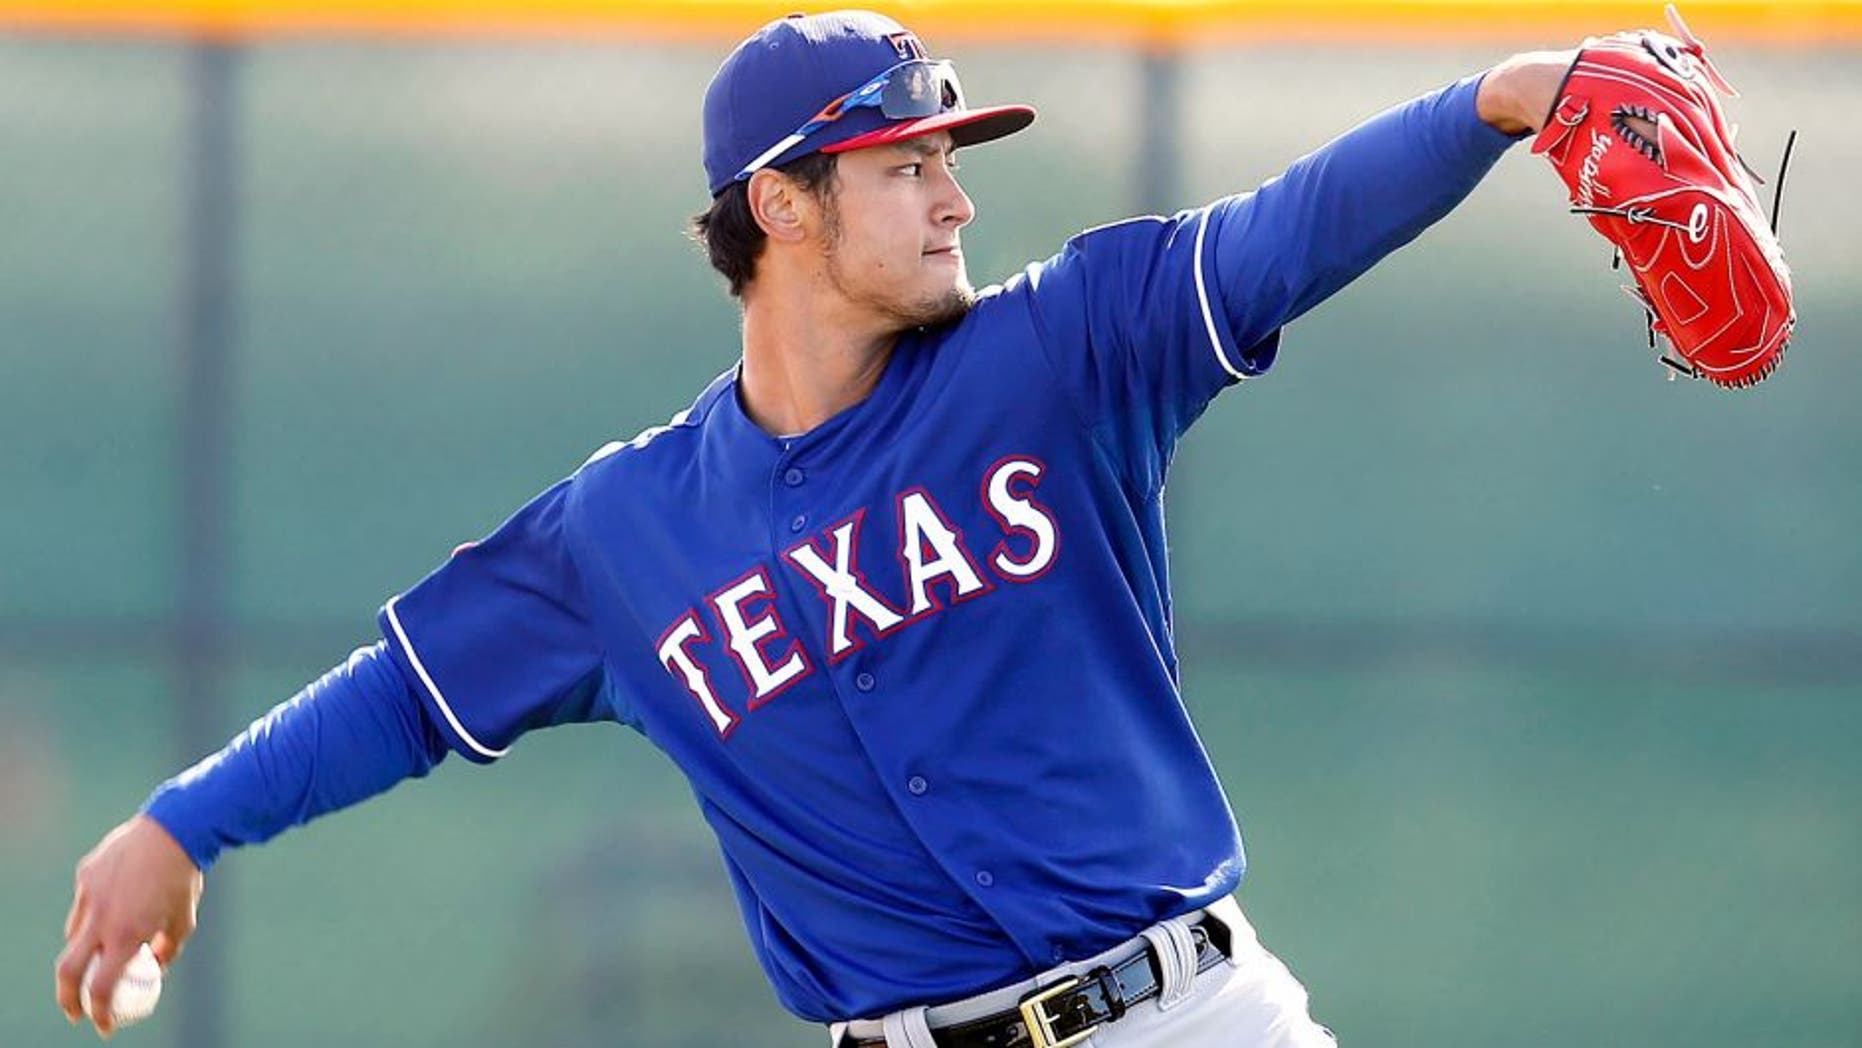 Feb 24, 2015; Surprise, AZ, USA; Texas Rangers starting pitcher Yu Darvish (11) warms up during spring training camp at Surprise Stadium. Mandatory Credit: Rick Scuteri-USA TODAY Sports